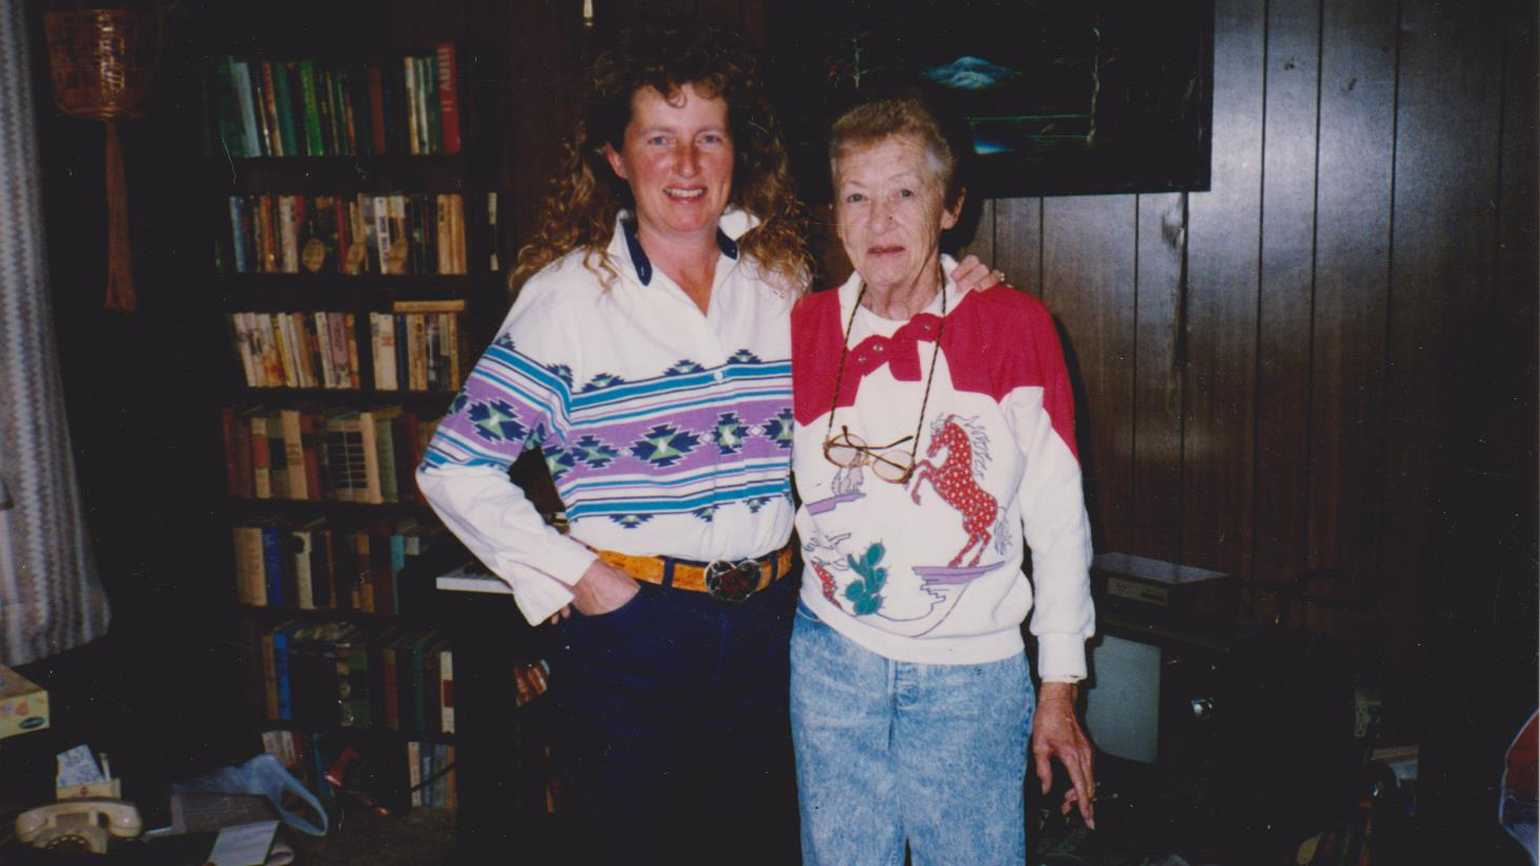 Lou Dean and her mother.